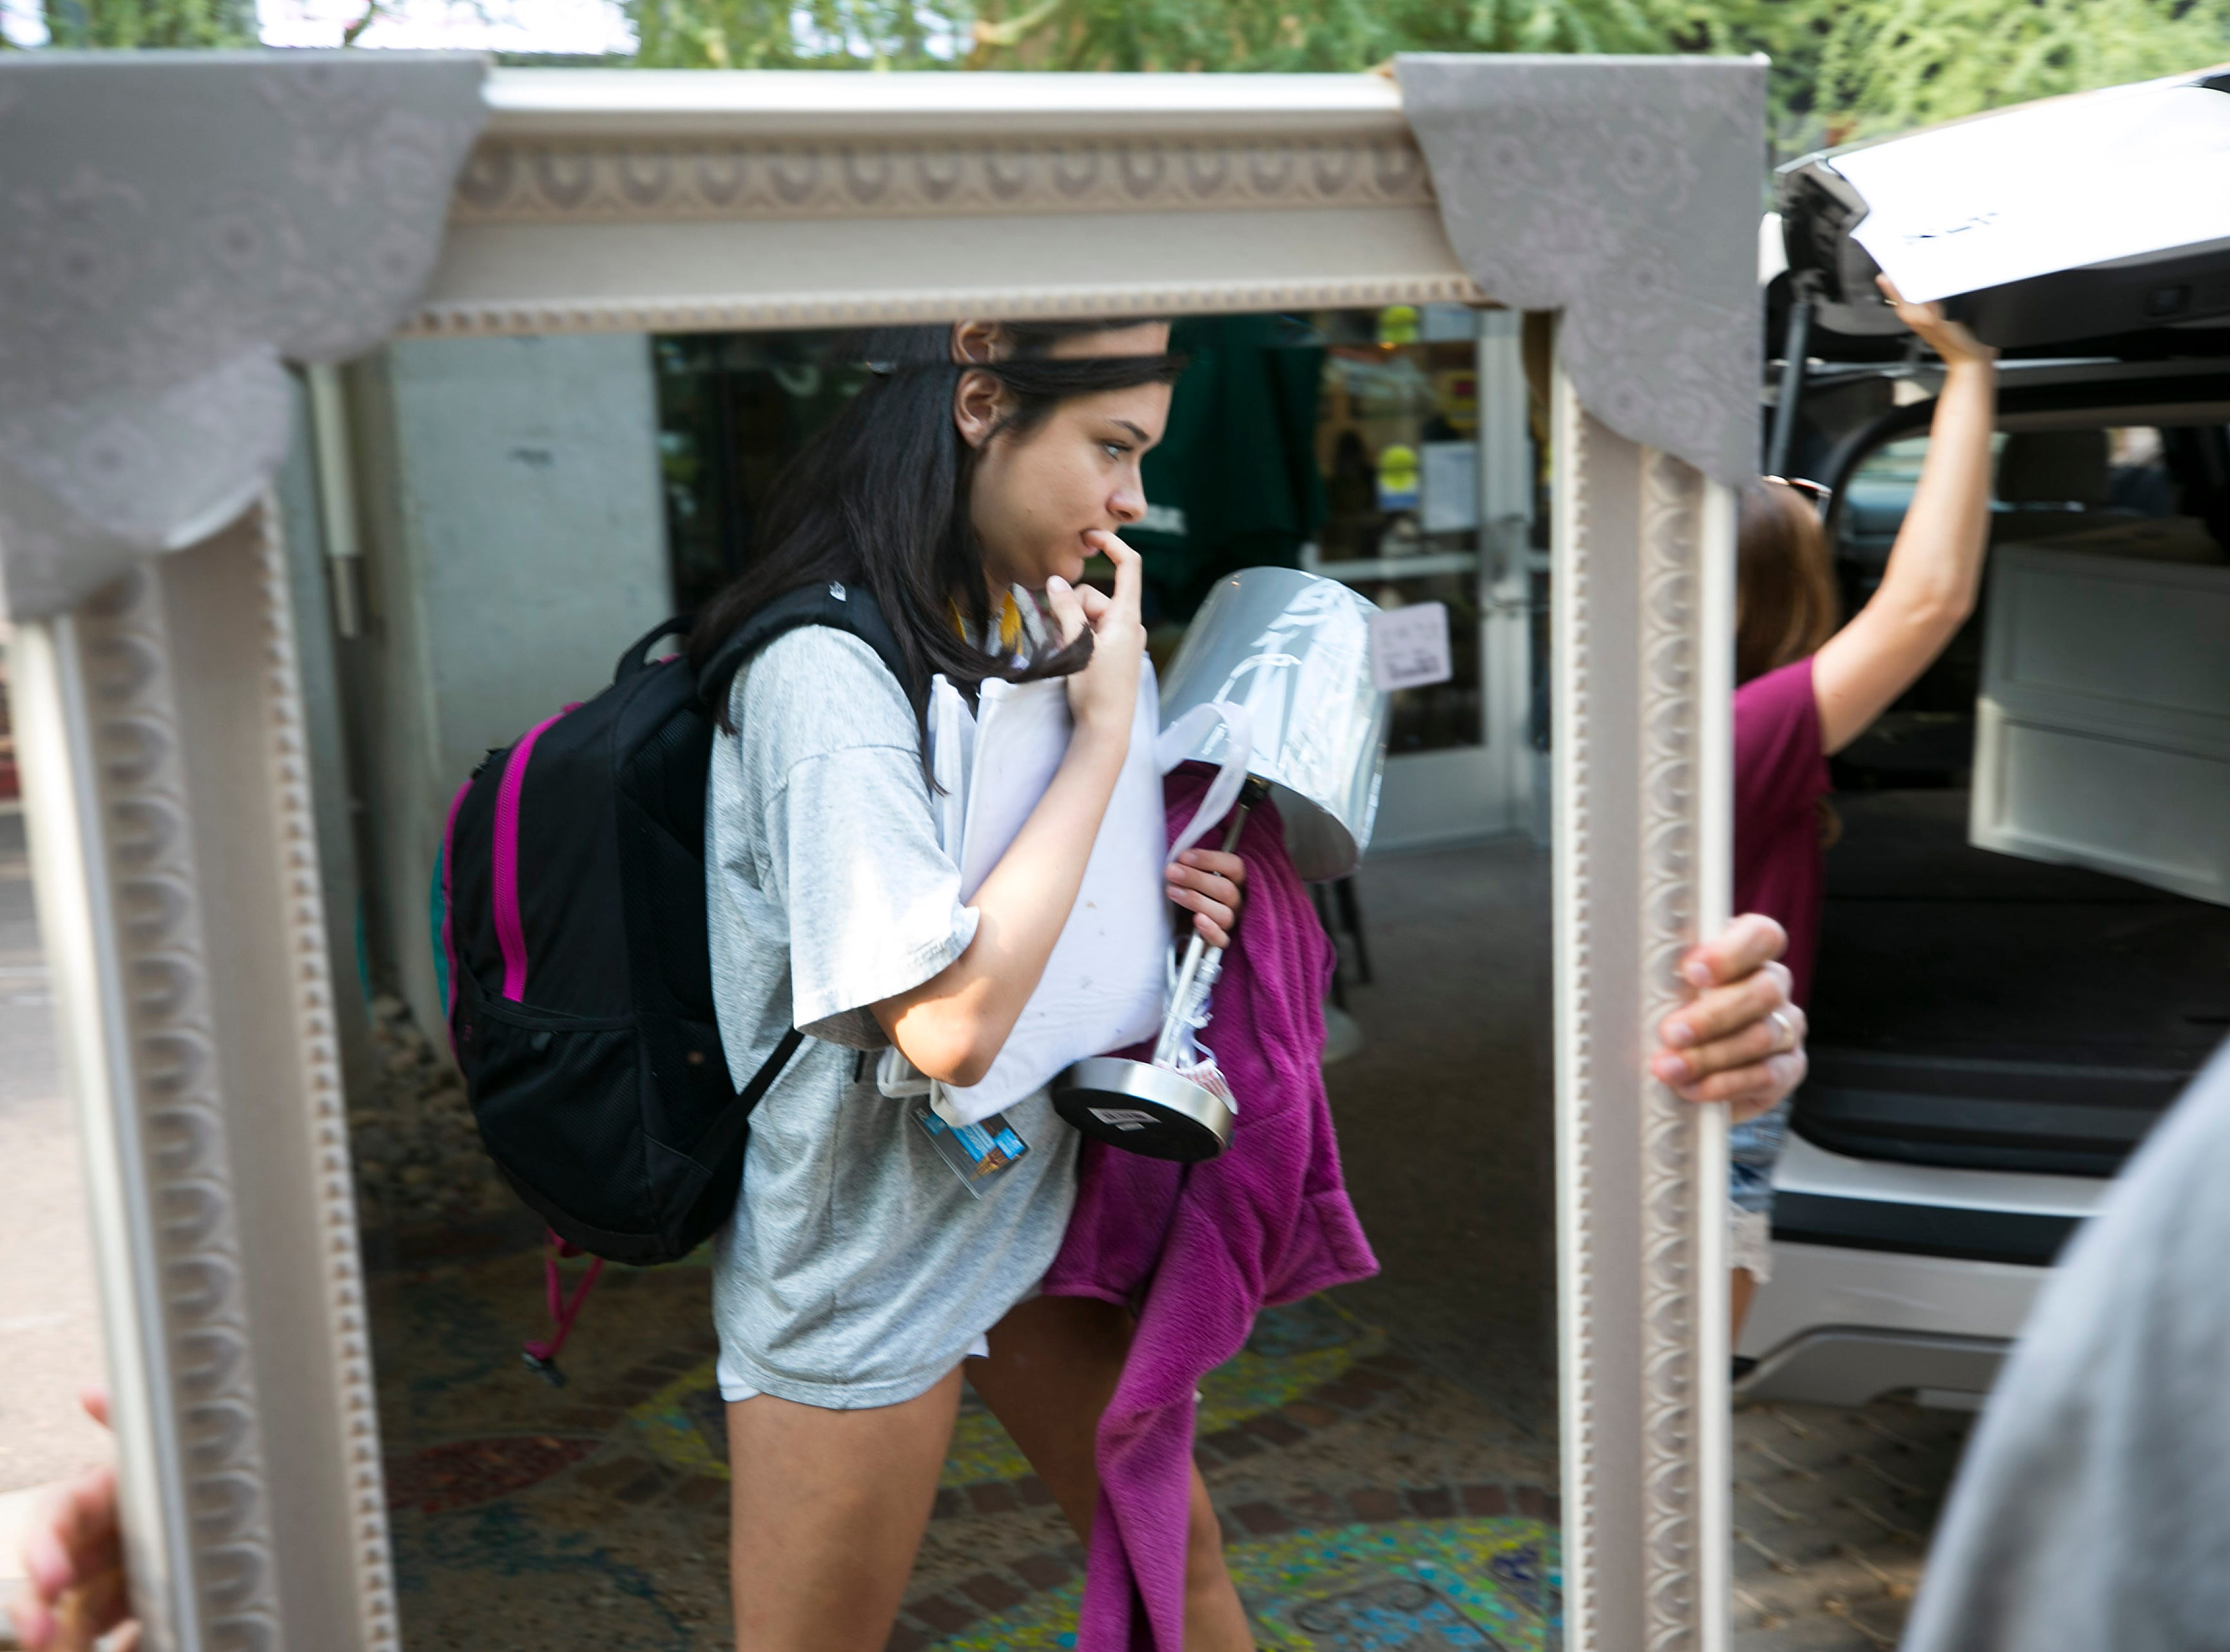 Incoming freshman Claire Stroud of Newbury Park, California, is seen reflected in her mirror while moving into her dorm at Taylor Place on the ASU downtown Phoenix campus on Aug. 10, 2018.